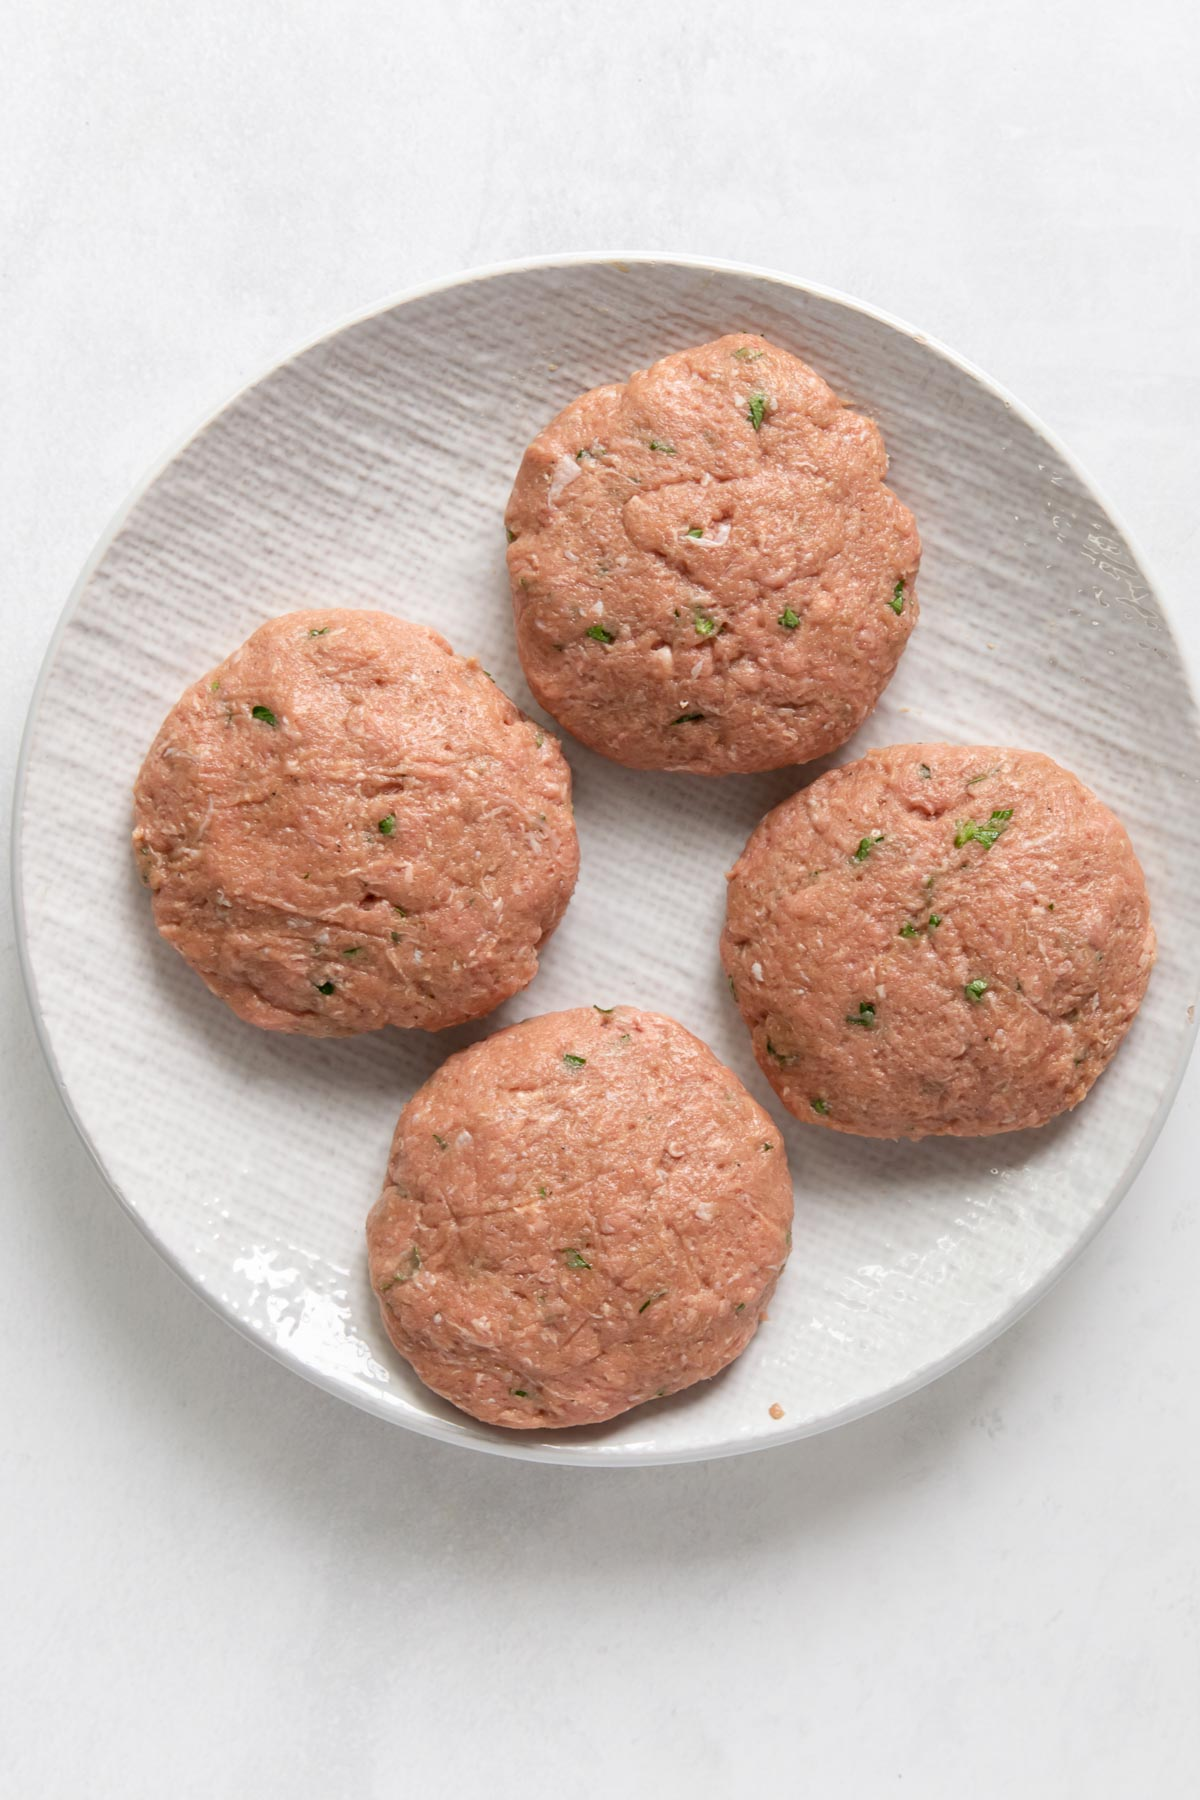 four uncooked turkey burger patties on a plate